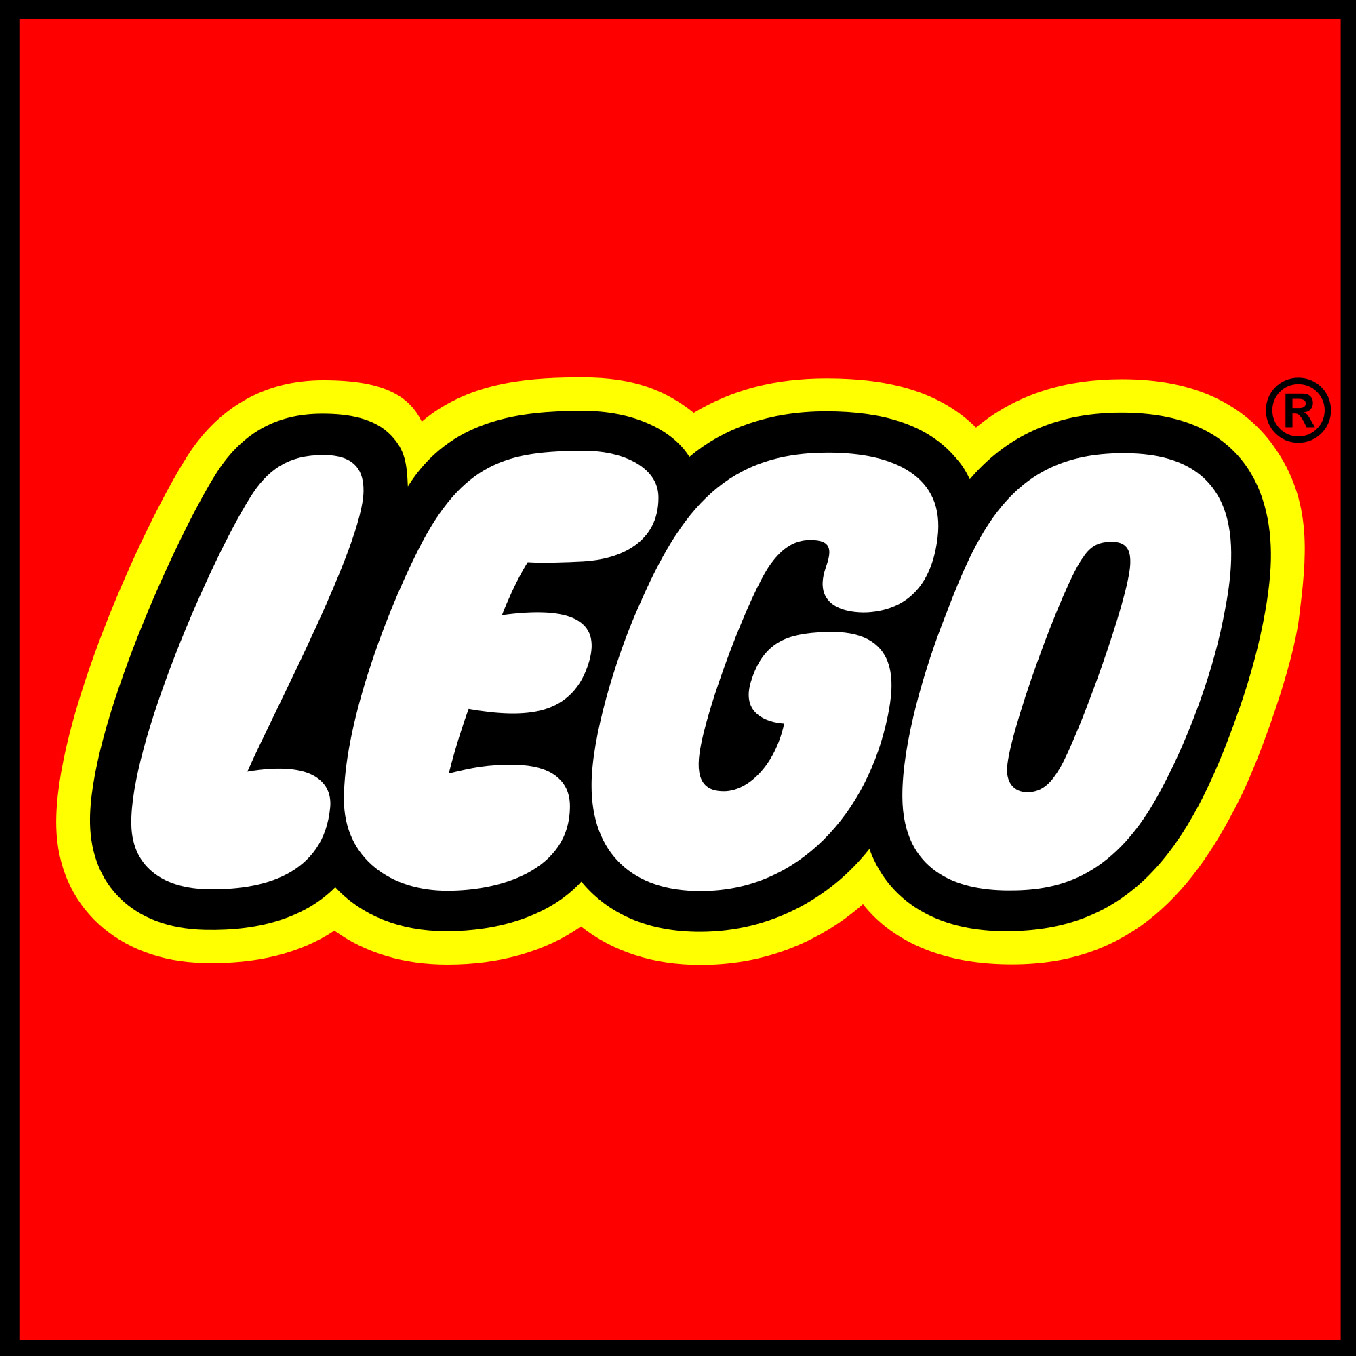 I want to buy Lego (As mush as possible)